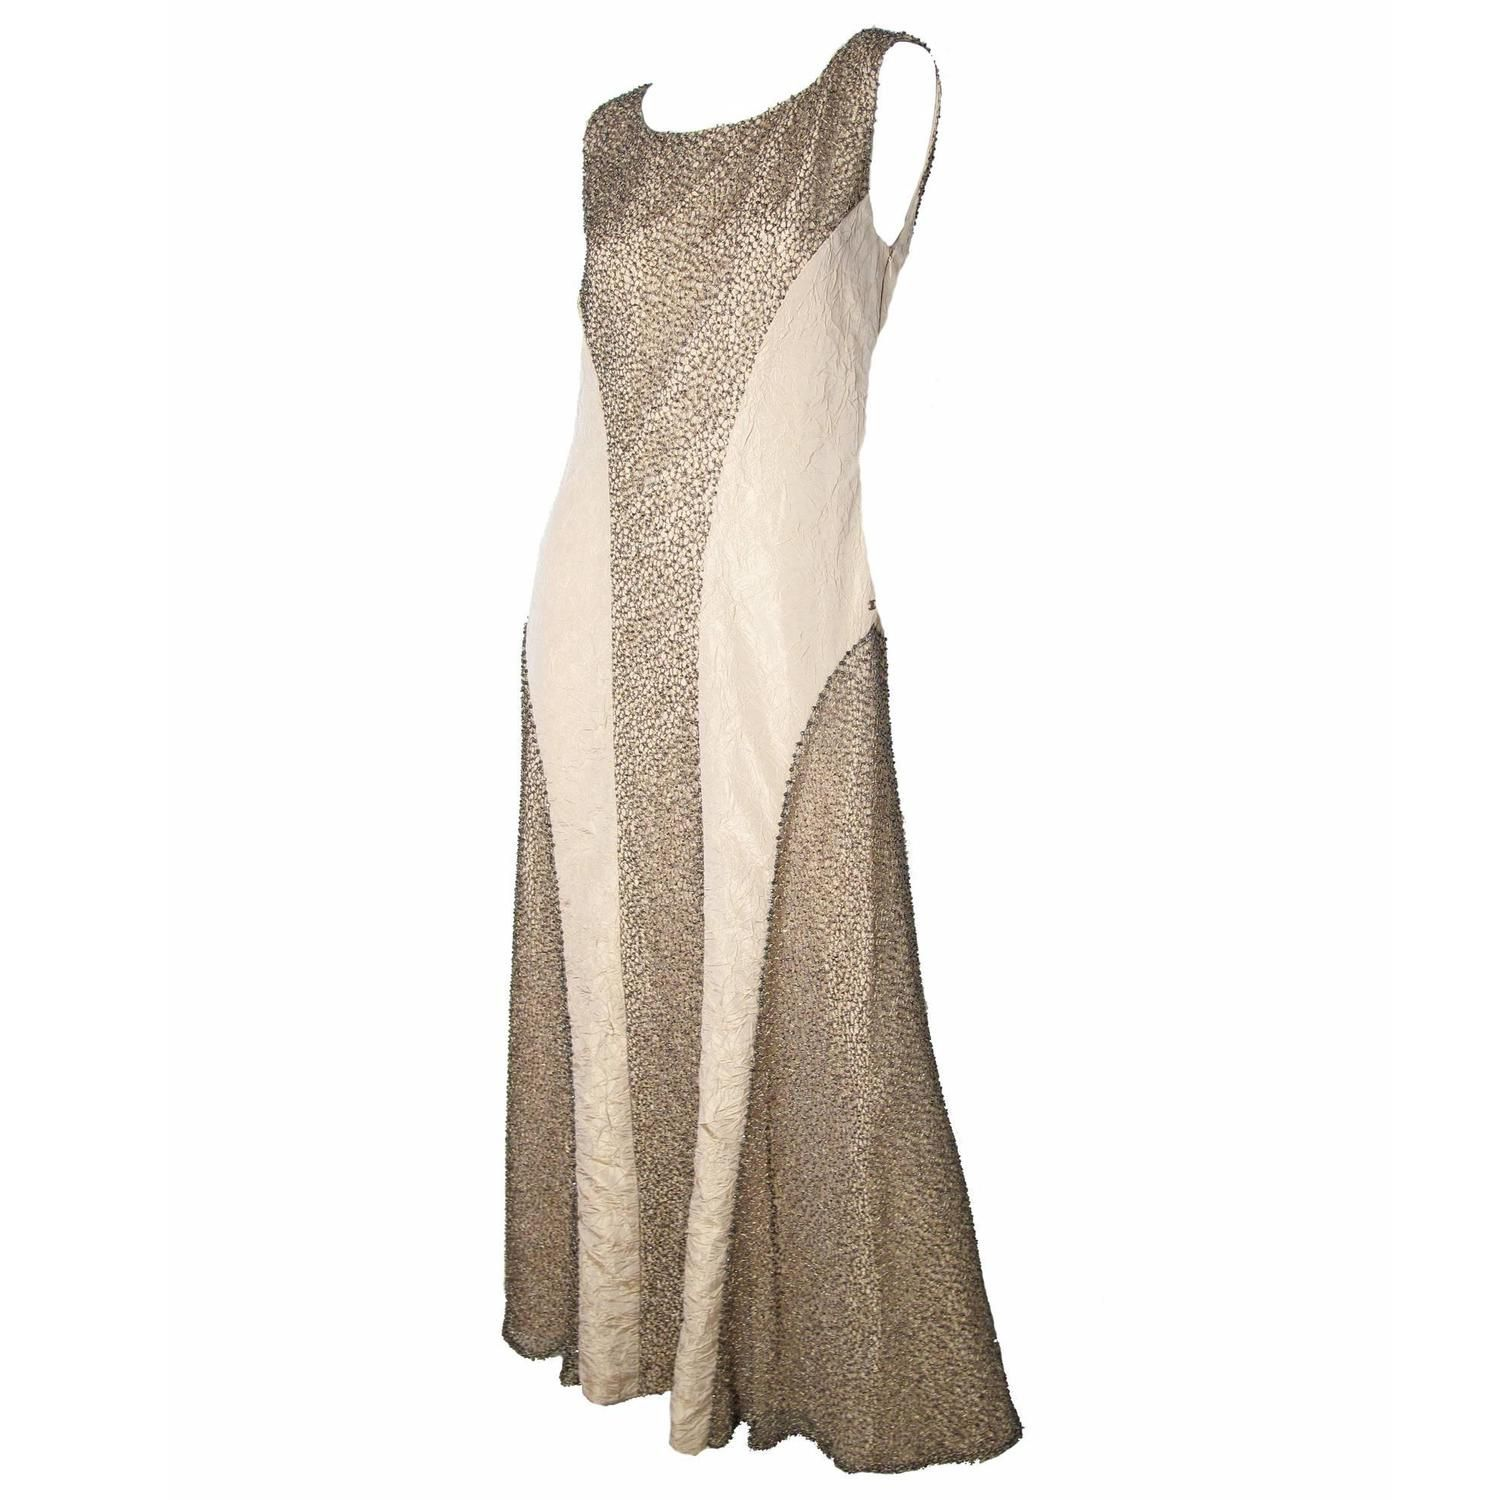 Chanel Evening Gown with Metallic Thread and Beading - Sale | See ...